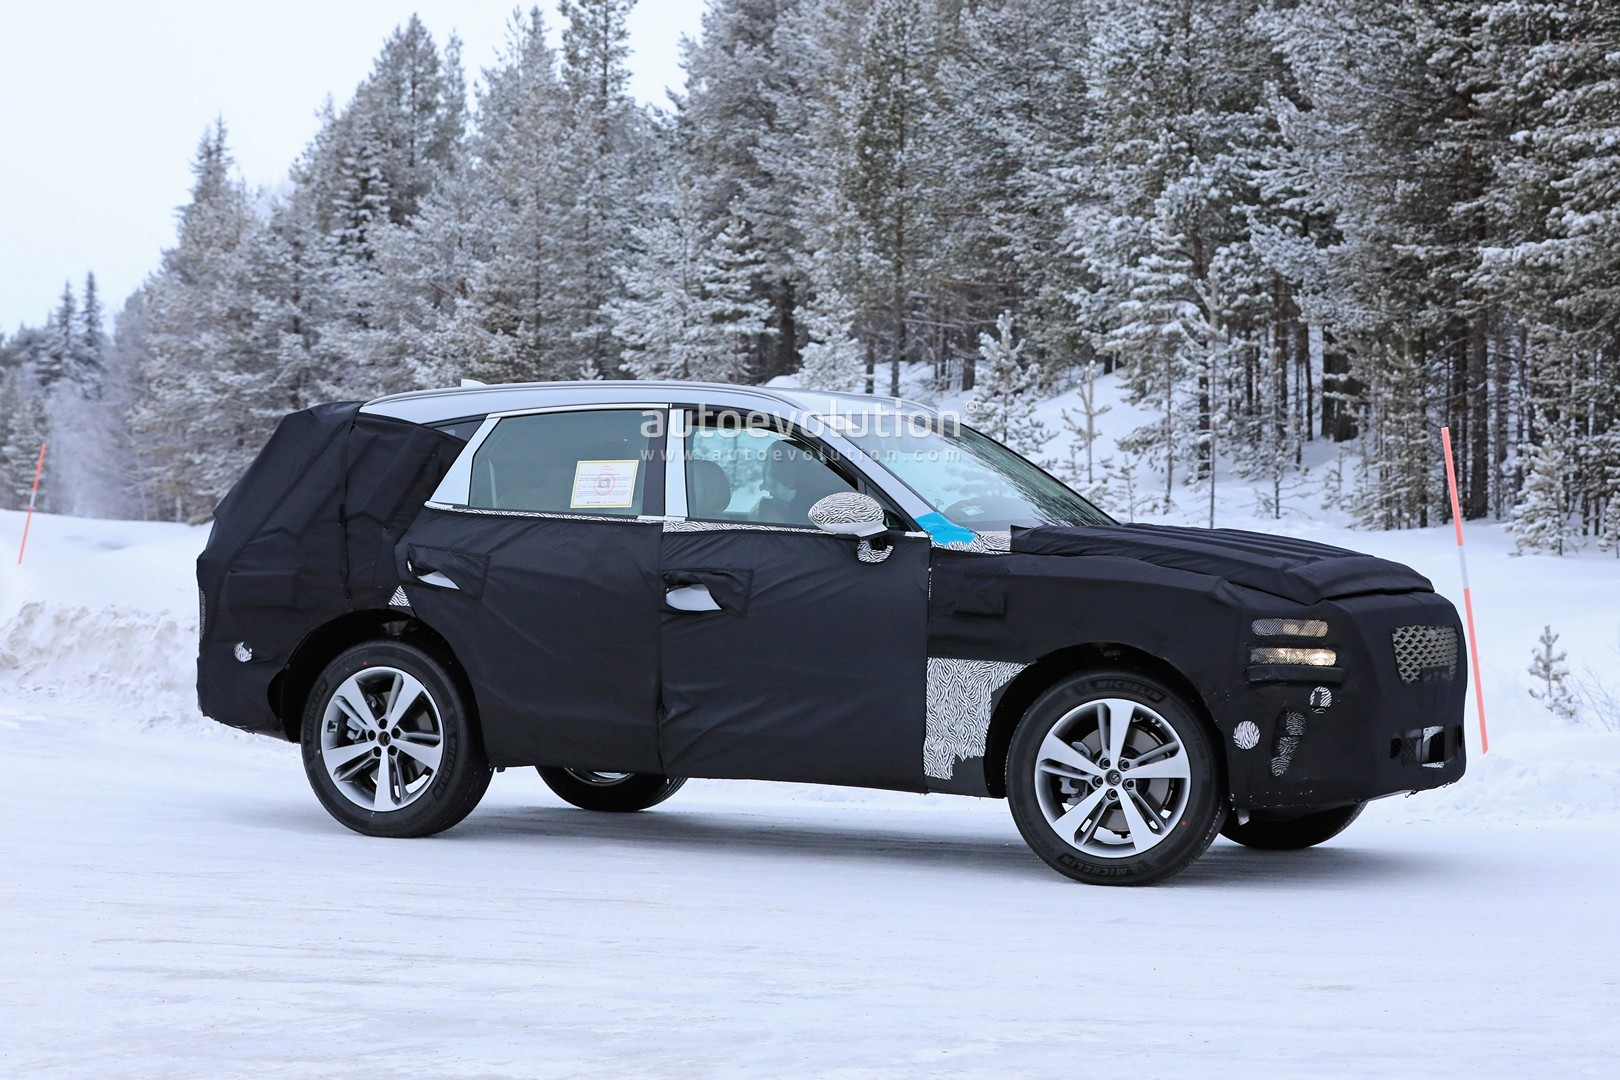 2019 - [Genesis] SUV GV80 - Page 2 Genesis-gv80-suv-prototype-makes-production-spyshots-debut_7